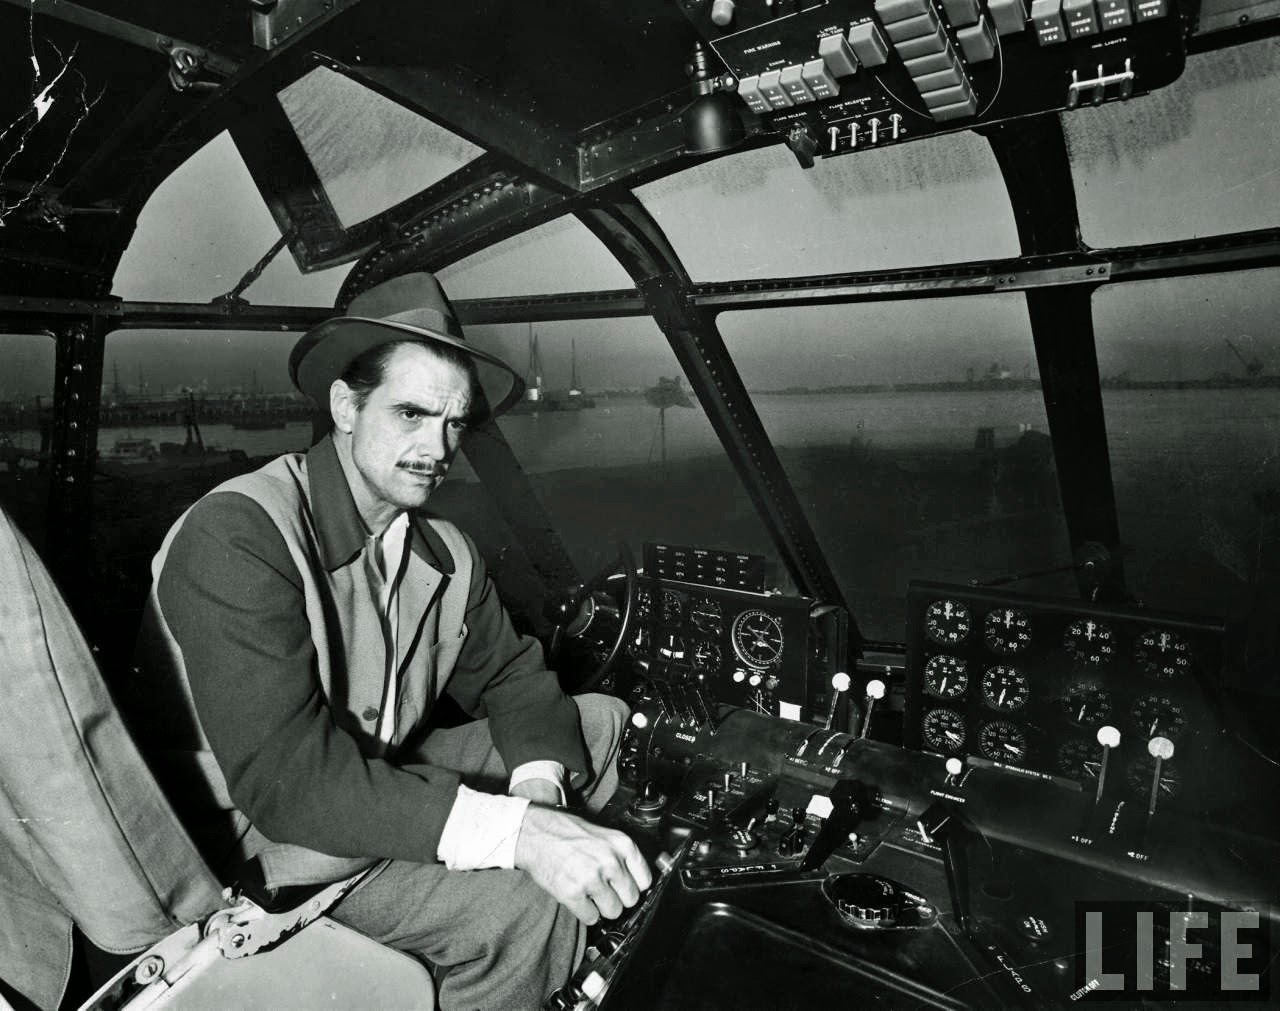 Ultimate Collection Of Rare Historical Photos. A Big Piece Of History (200 Pictures) - Howard Hughes inside of the H-4 Hercules